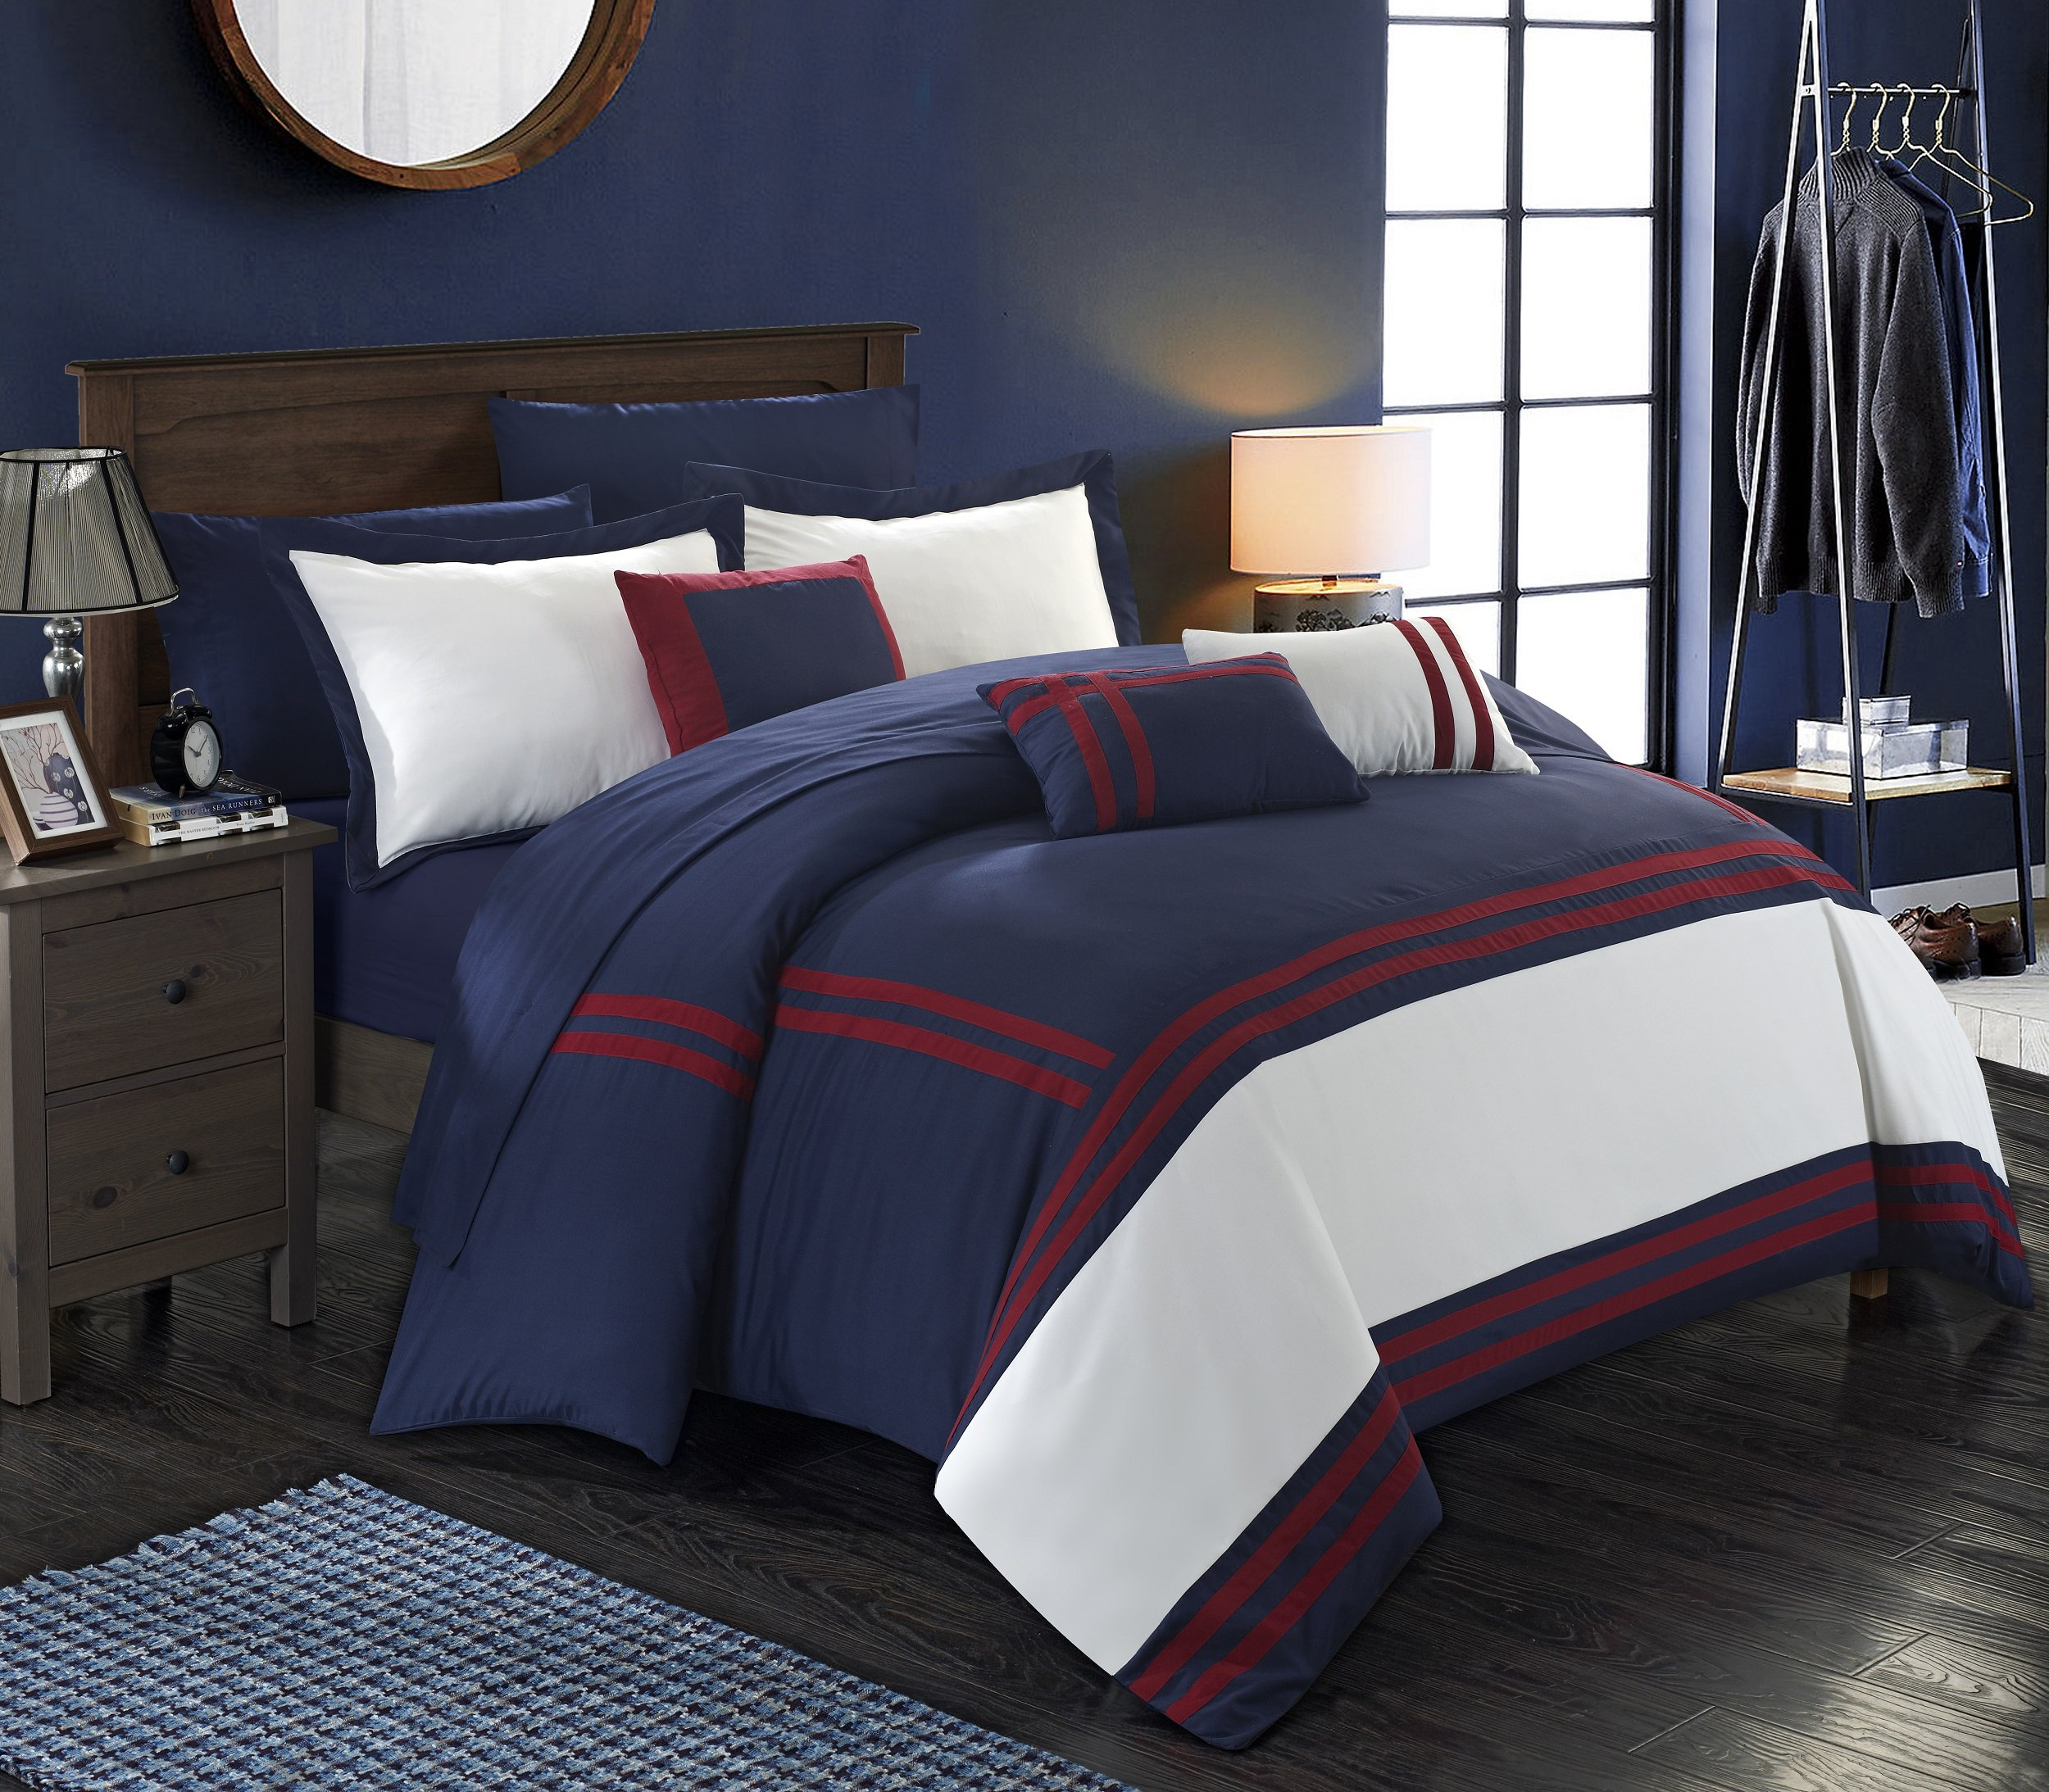 Chic Home Zarah 10 Piece Comforter Set Complete Bed in a Bag Pieced Color Block Banding Bedding with Sheet Set And Decorative Pillows Shams Included, Queen Navy